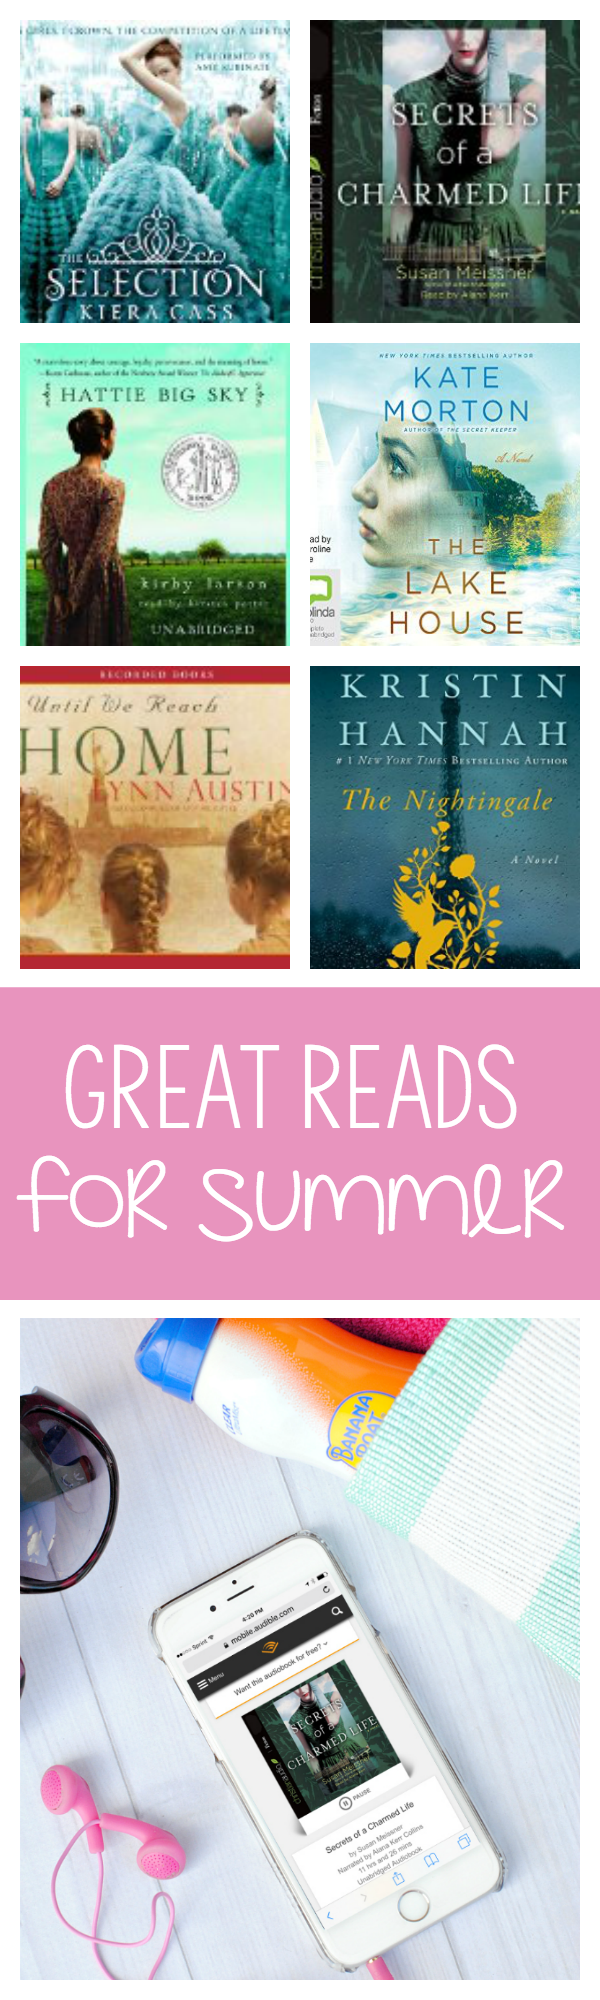 25+ Best Books for Summer!